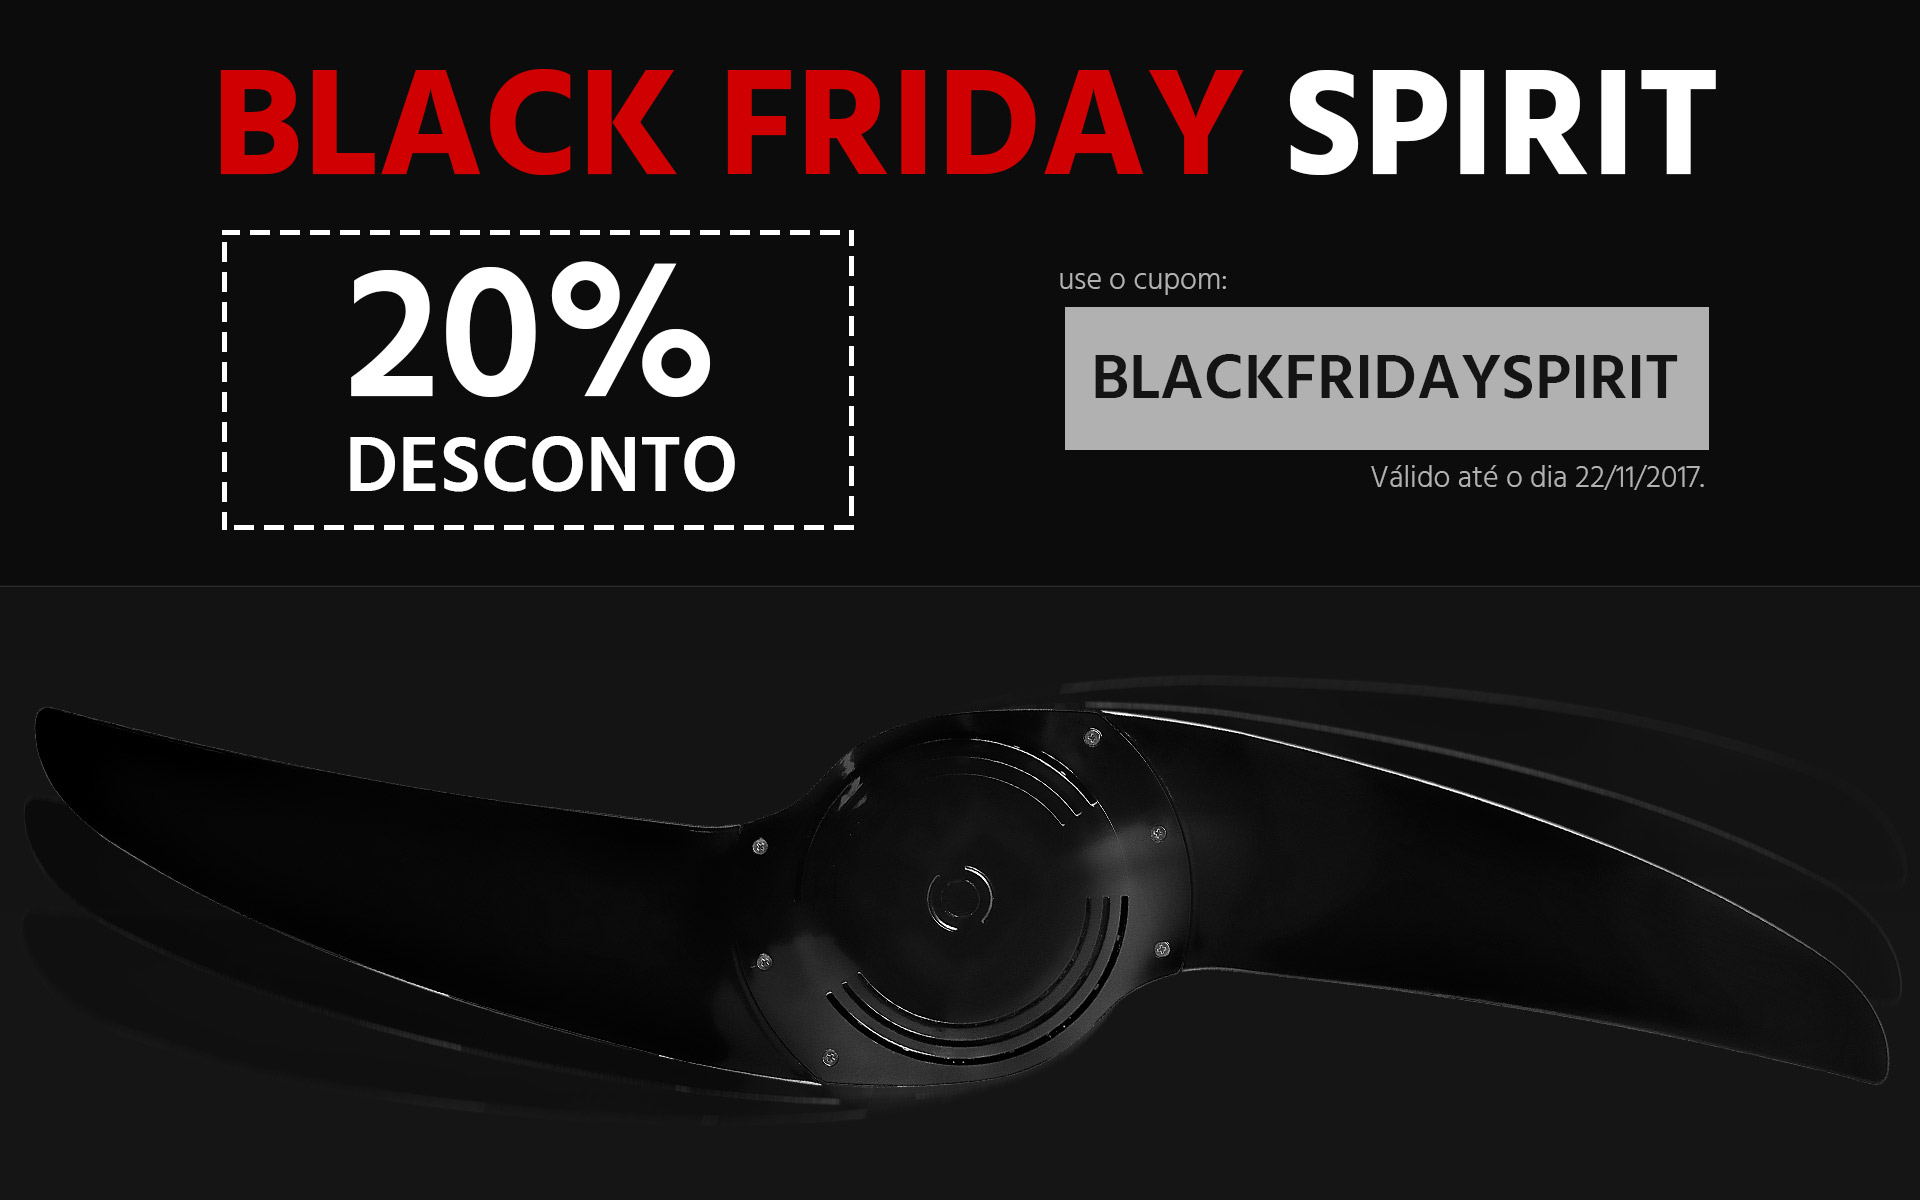 ventilador de teto Spirit - Blog Myspirit - Black Friday SPIRIT